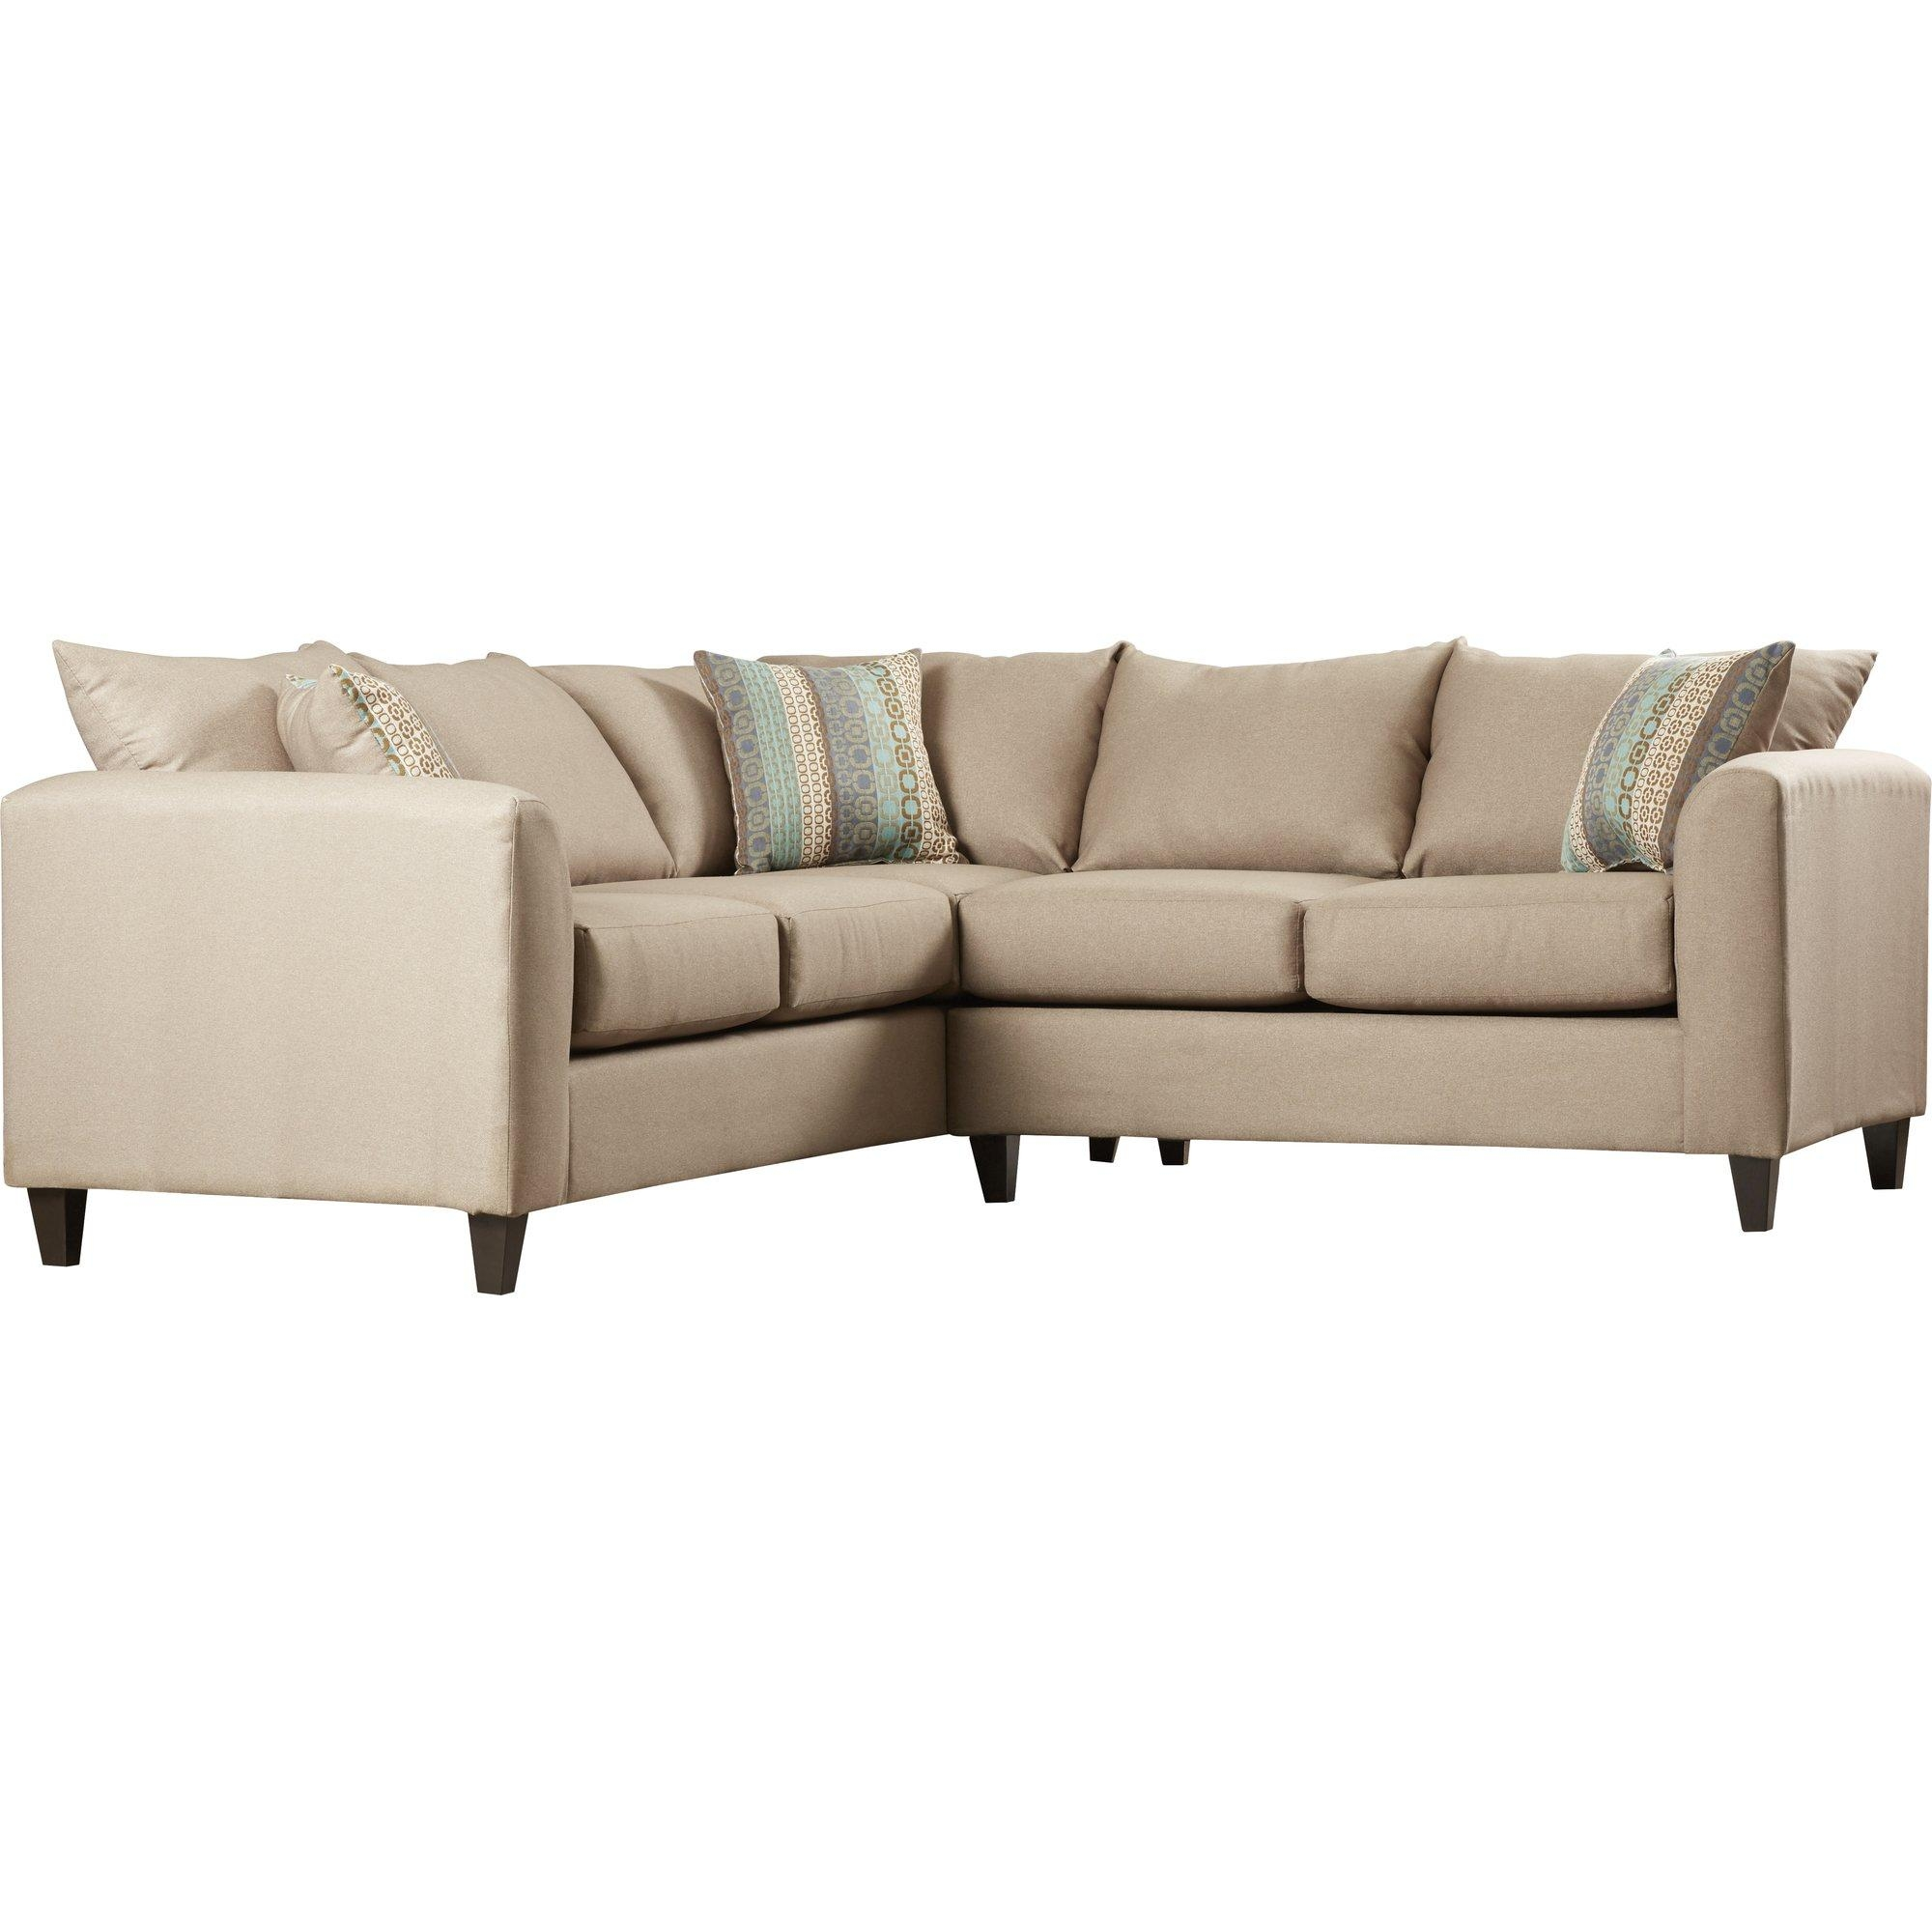 Beachcrest Home Serta Sectional & Reviews | Wayfair Supply Within Serta Sectional (View 13 of 20)